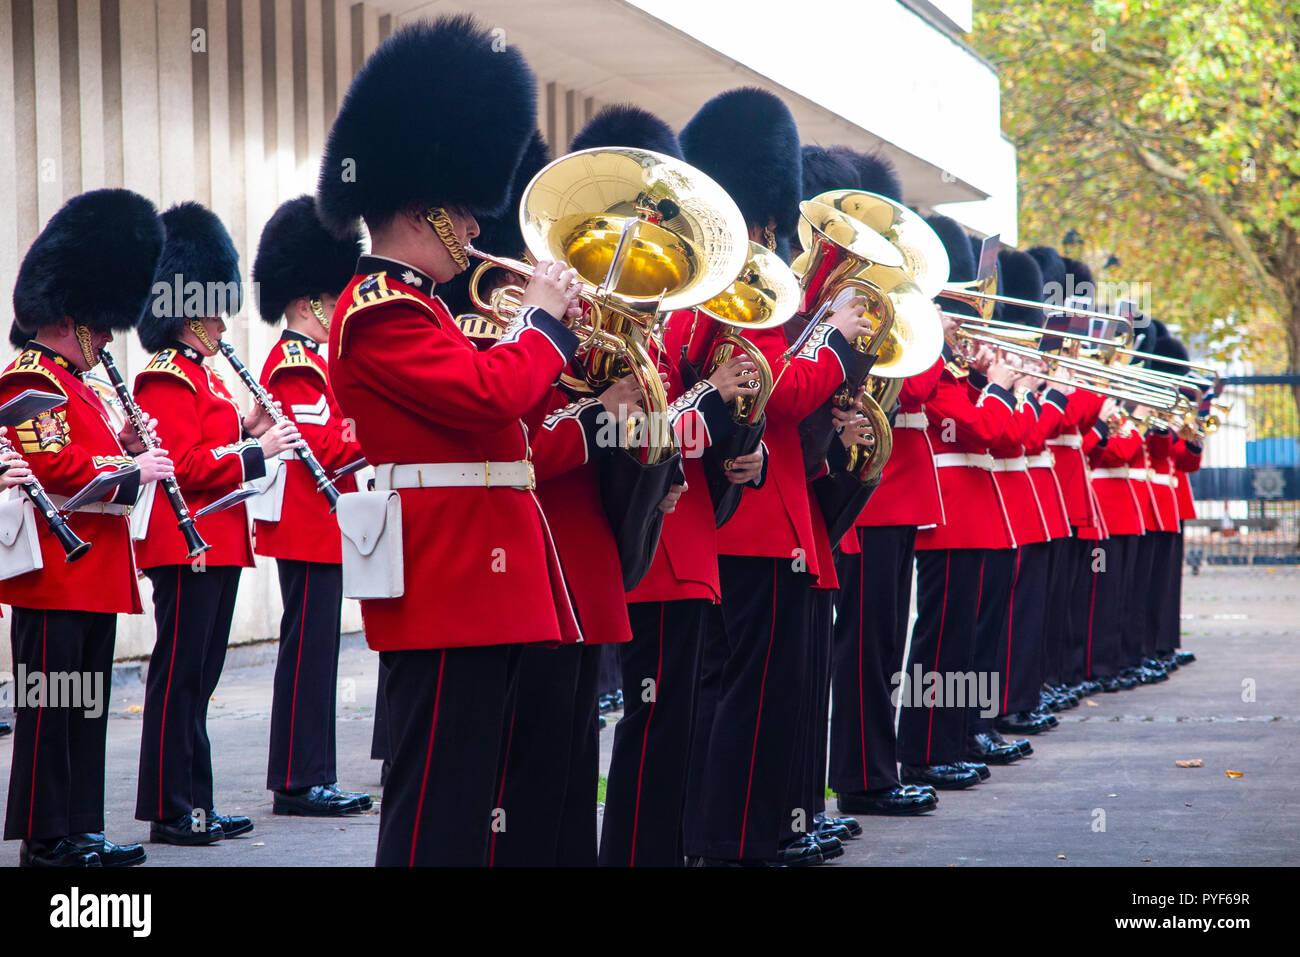 A military band rehearse for the changing of the guard as onlookers watch - Stock Image